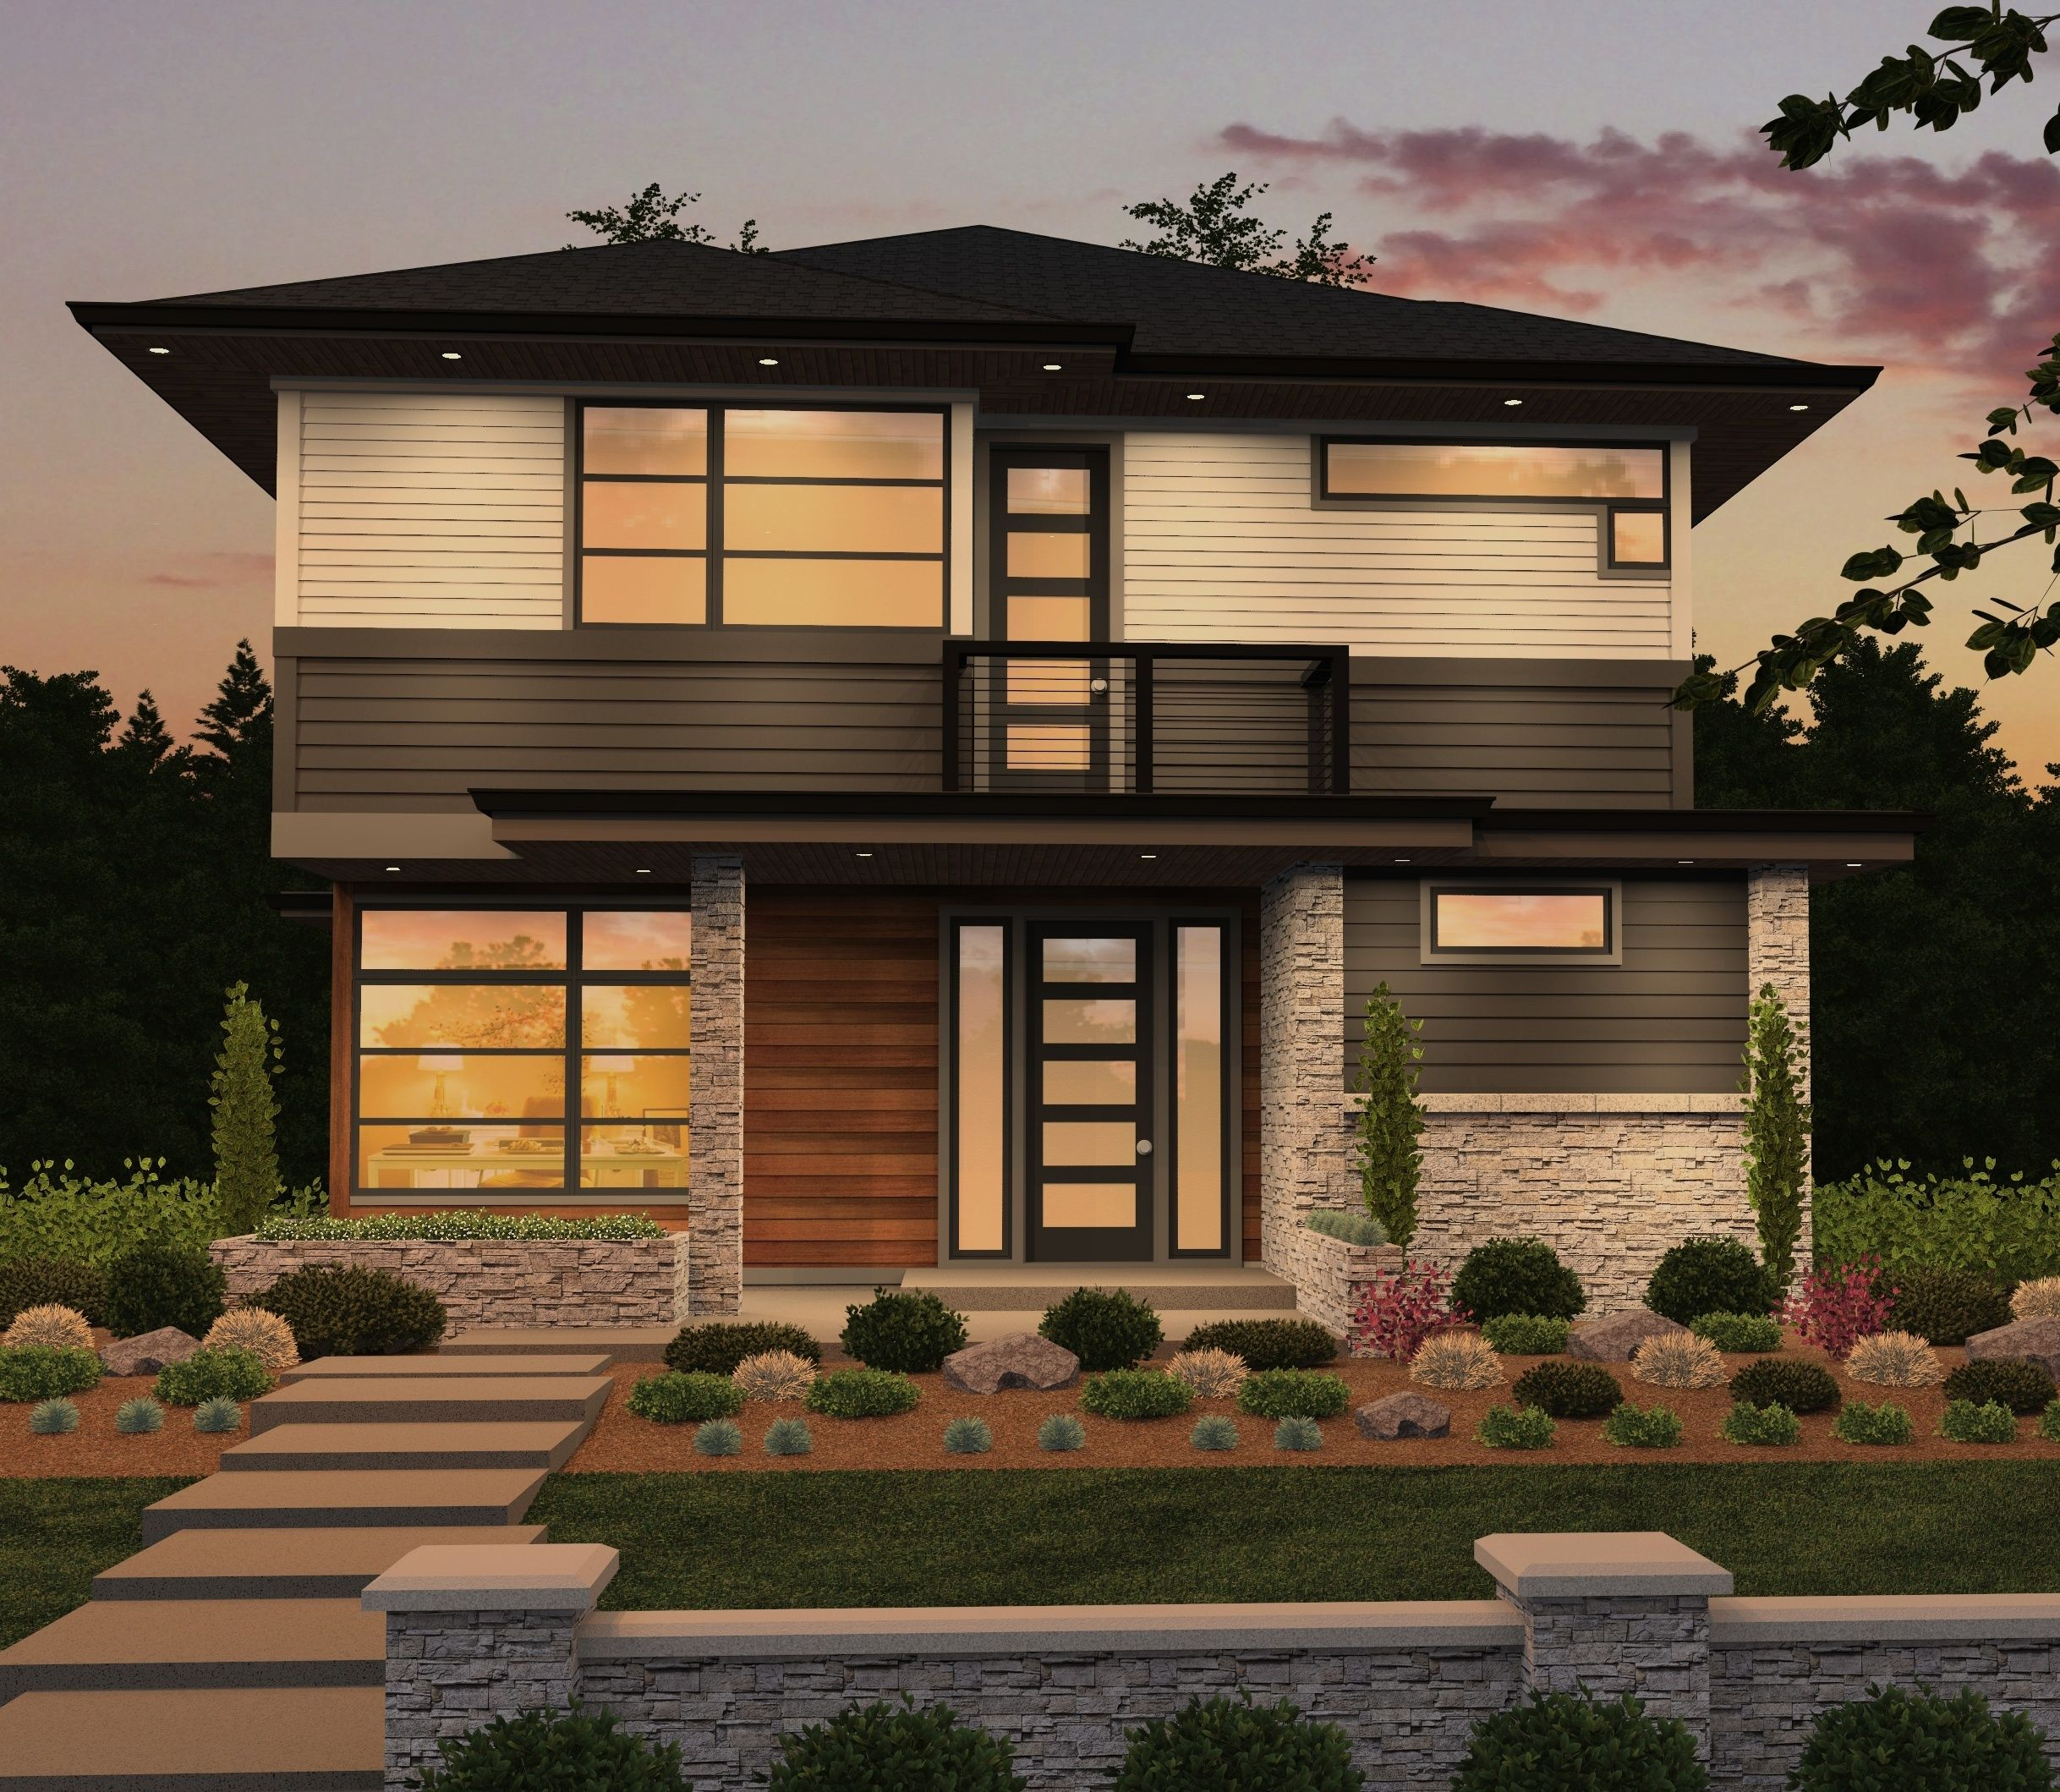 Sixth Avenue Contemporary House Plan By Mark Stewart Contemporary House Contemporary House Plans House Plans